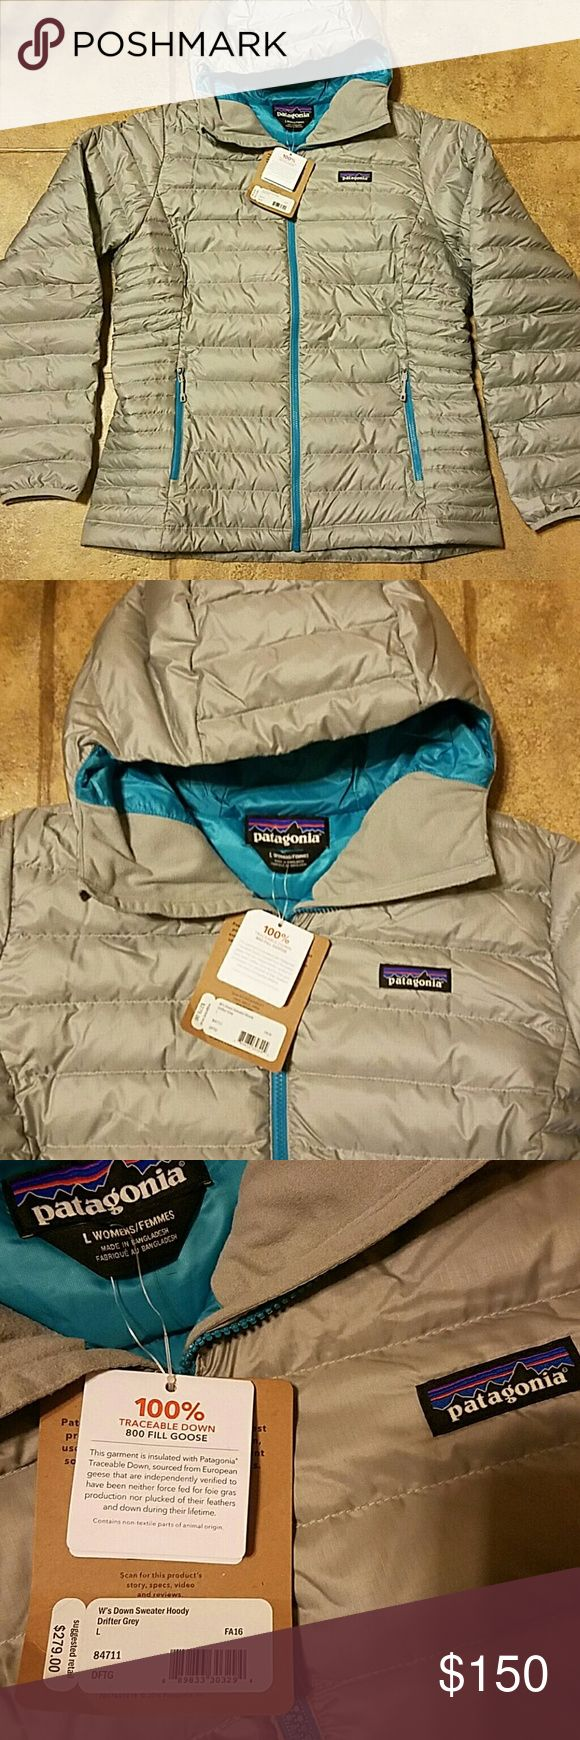 Women's sz lg Patagonia down sweater hoody grey New with tags women's Patagonia sz large down sweater hoody. Color is drifter grey. Patagonia Jackets & Coats